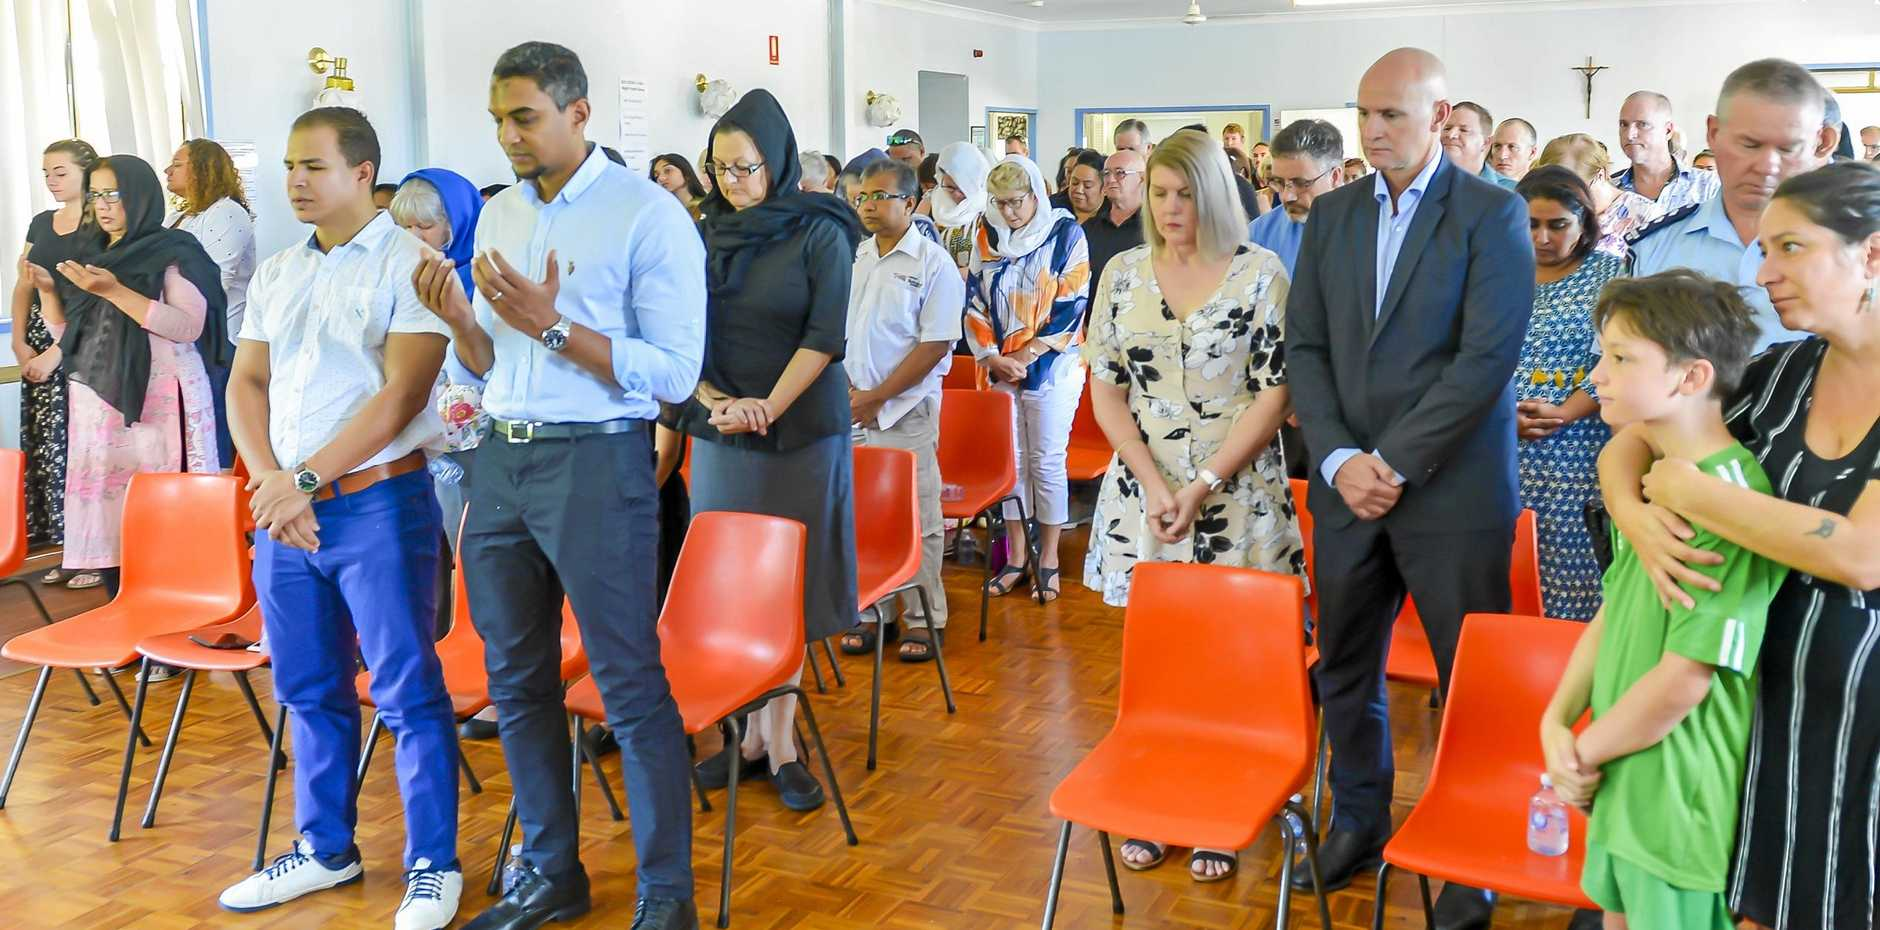 The community of Gladstone gathered for a morning of prayer for victims of the Christchurch terror attack.